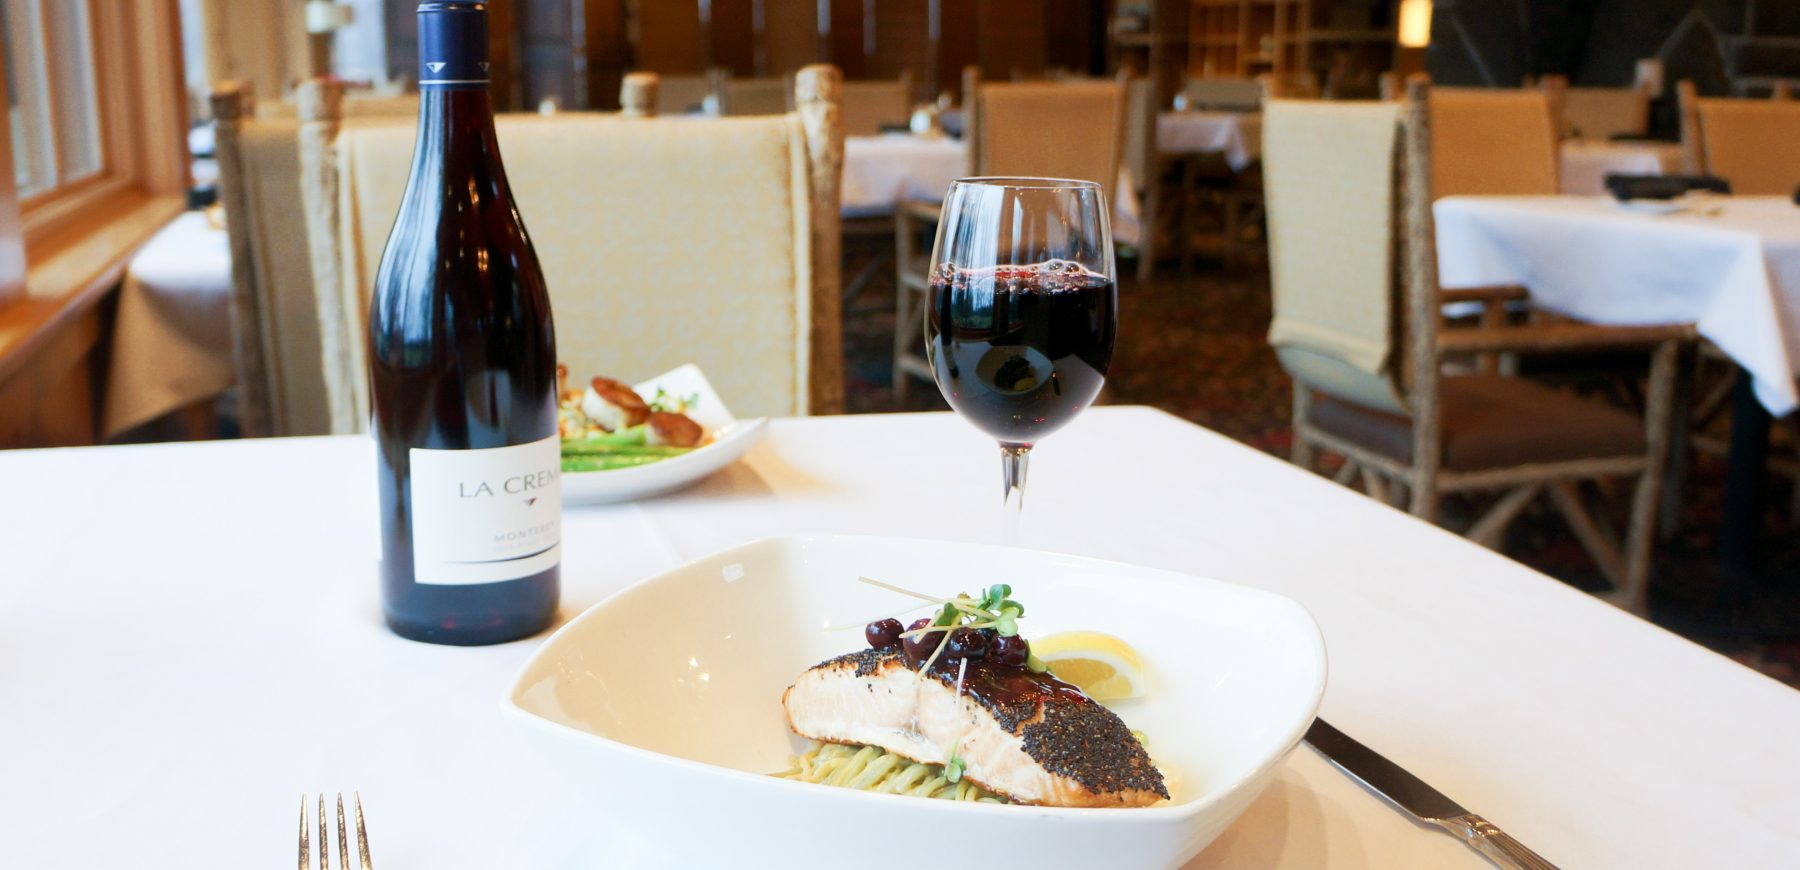 poppyseed salmon dish with glass of red wine